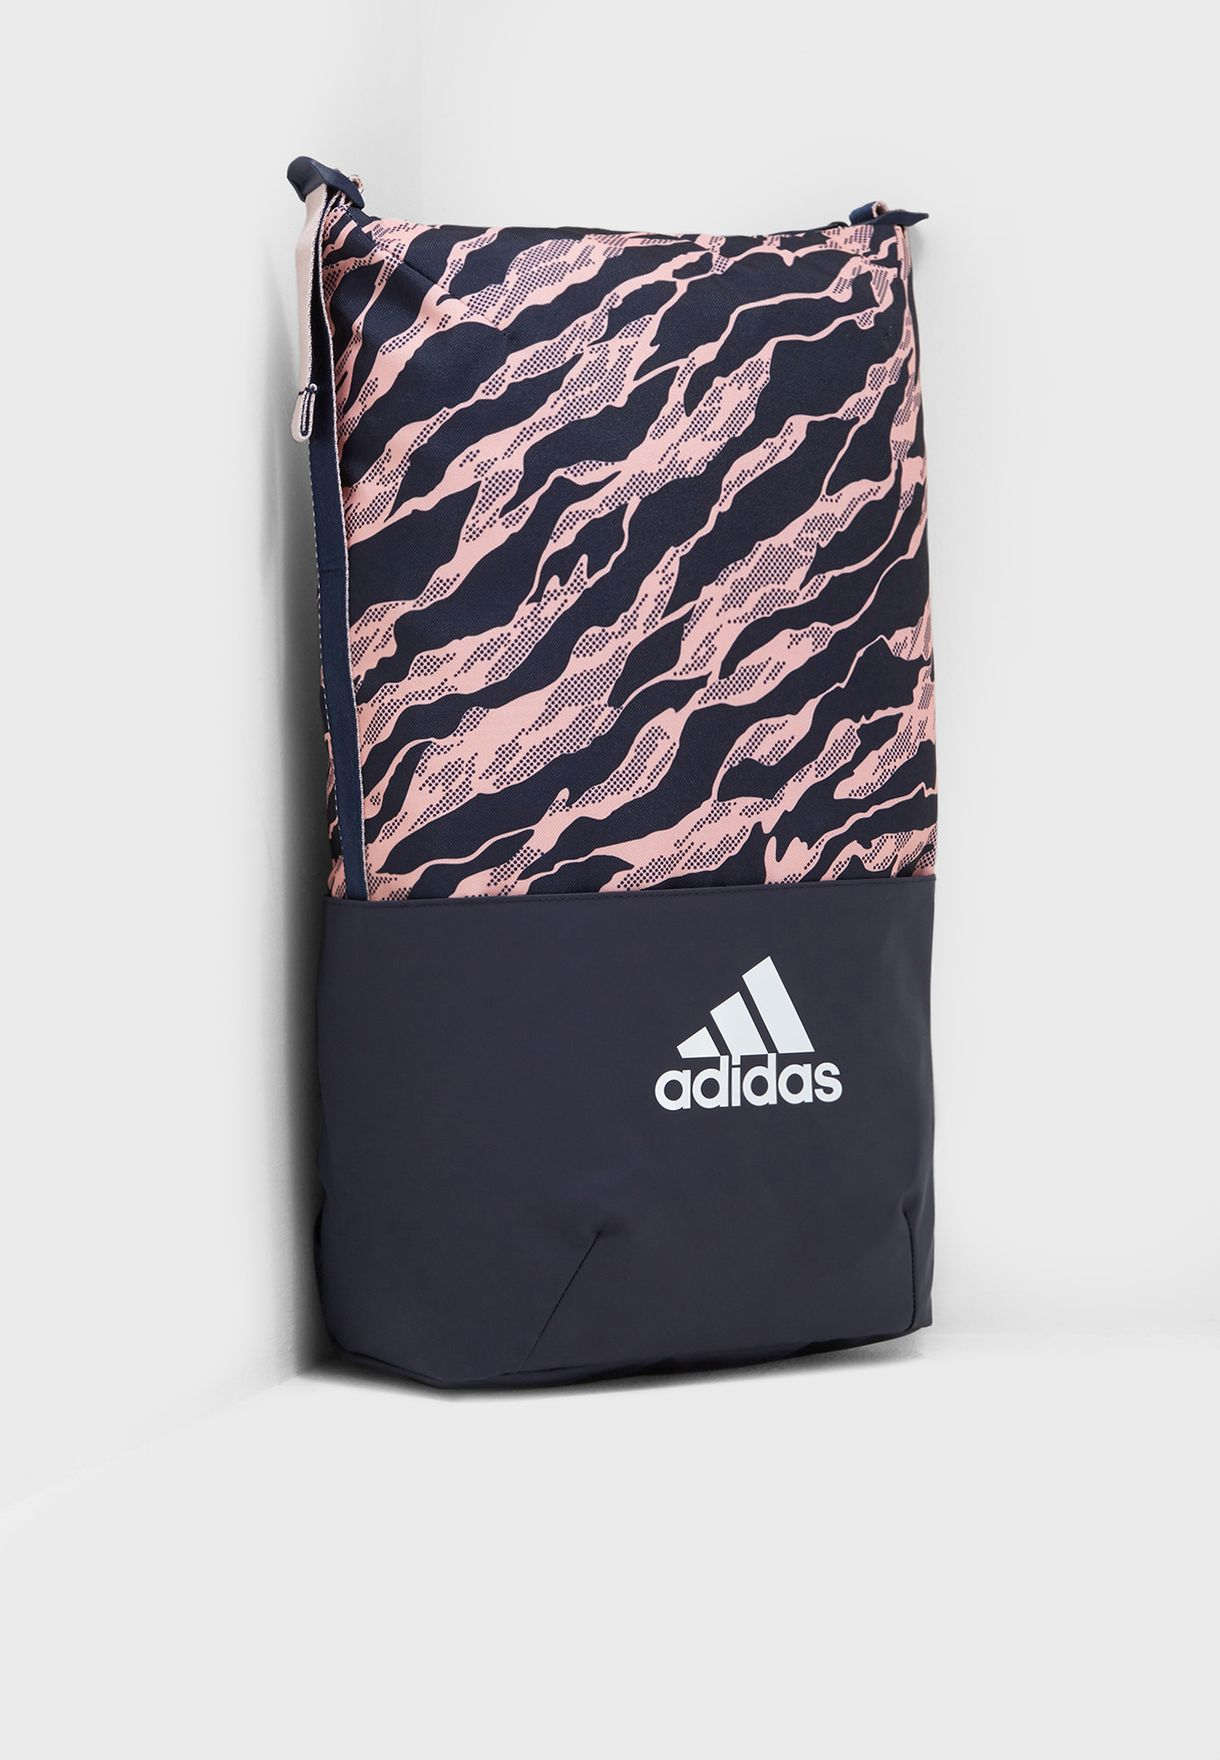 6f804982328 Shop adidas prints Z.N.E Core Backpack DM2792 for Women in UAE ...